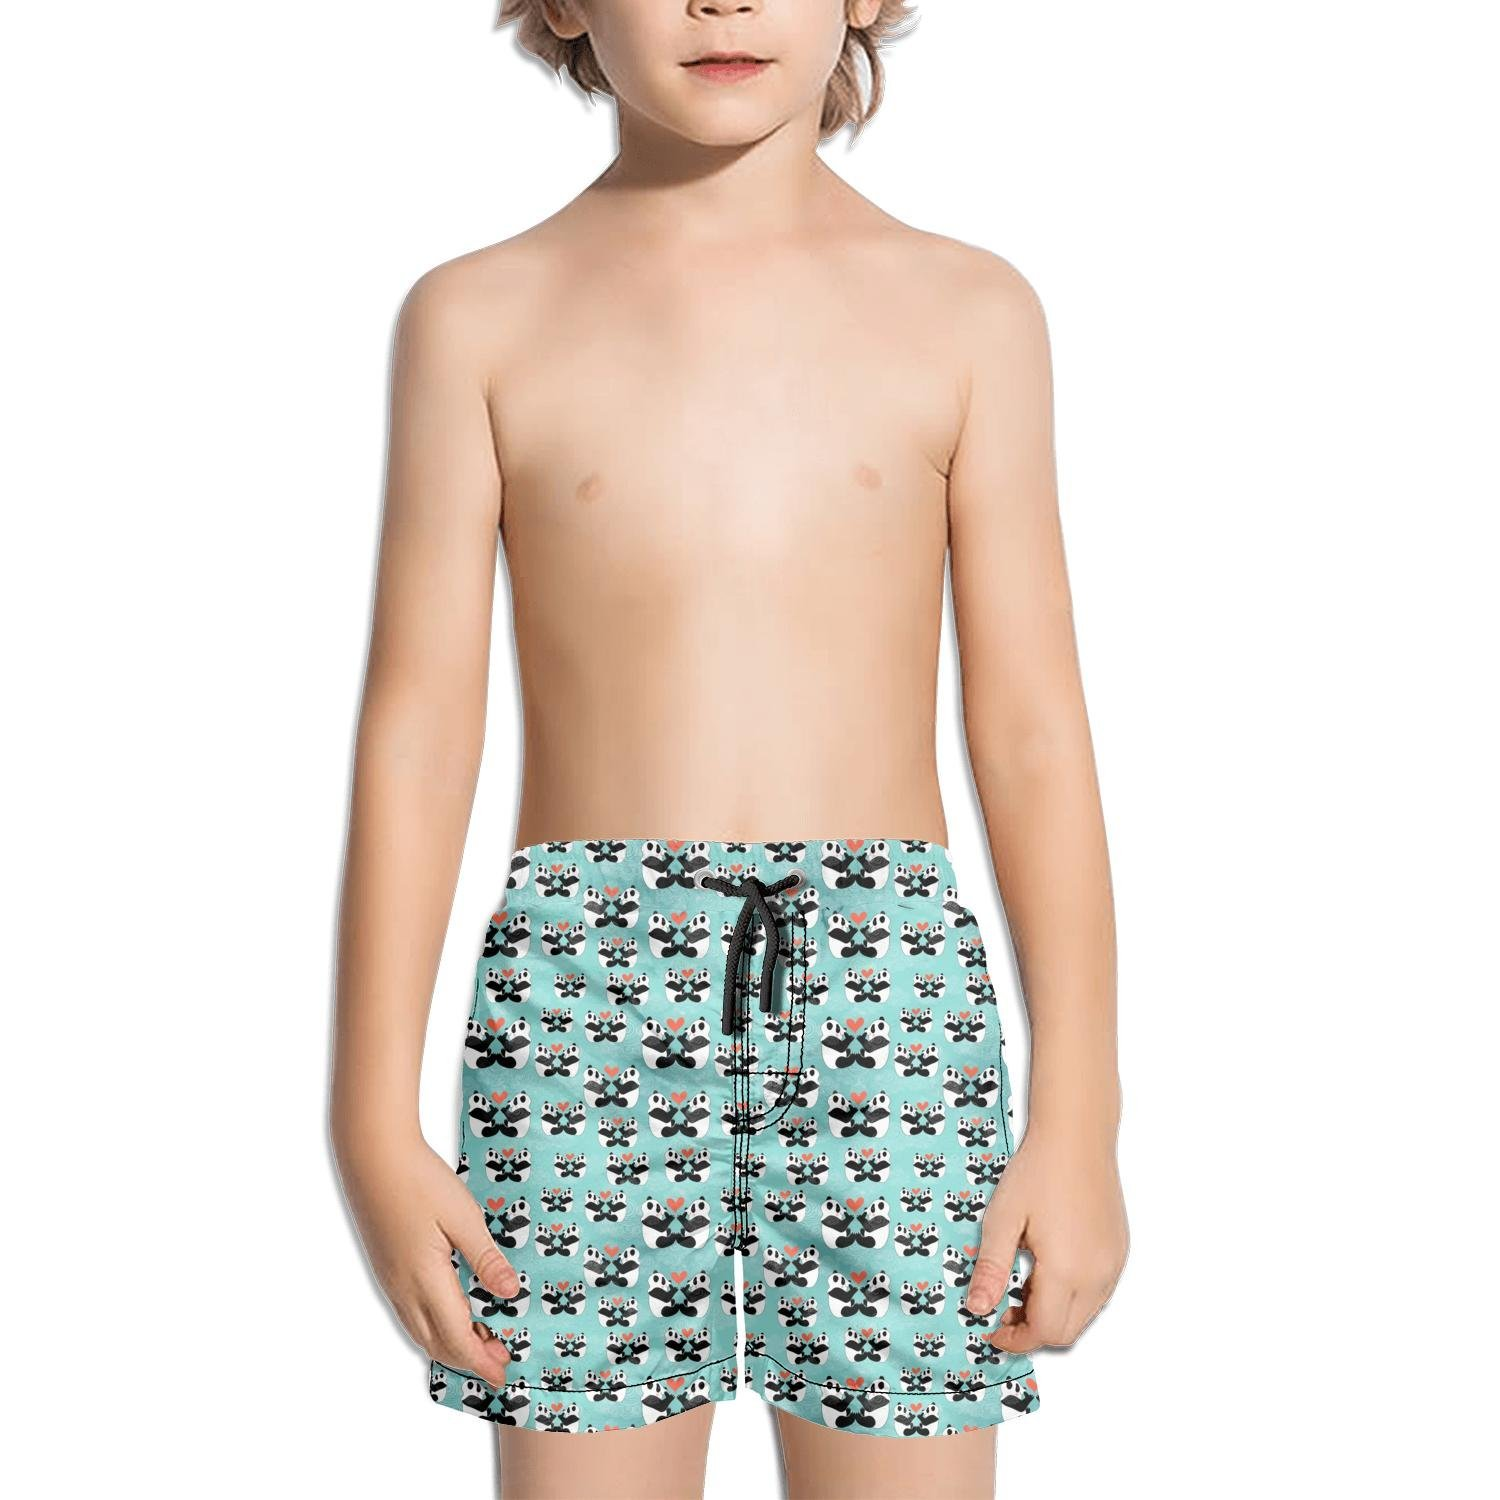 Ina Fers.Youth Quick Dry Swim Trunks Panda Bear in Love Blue Shorts